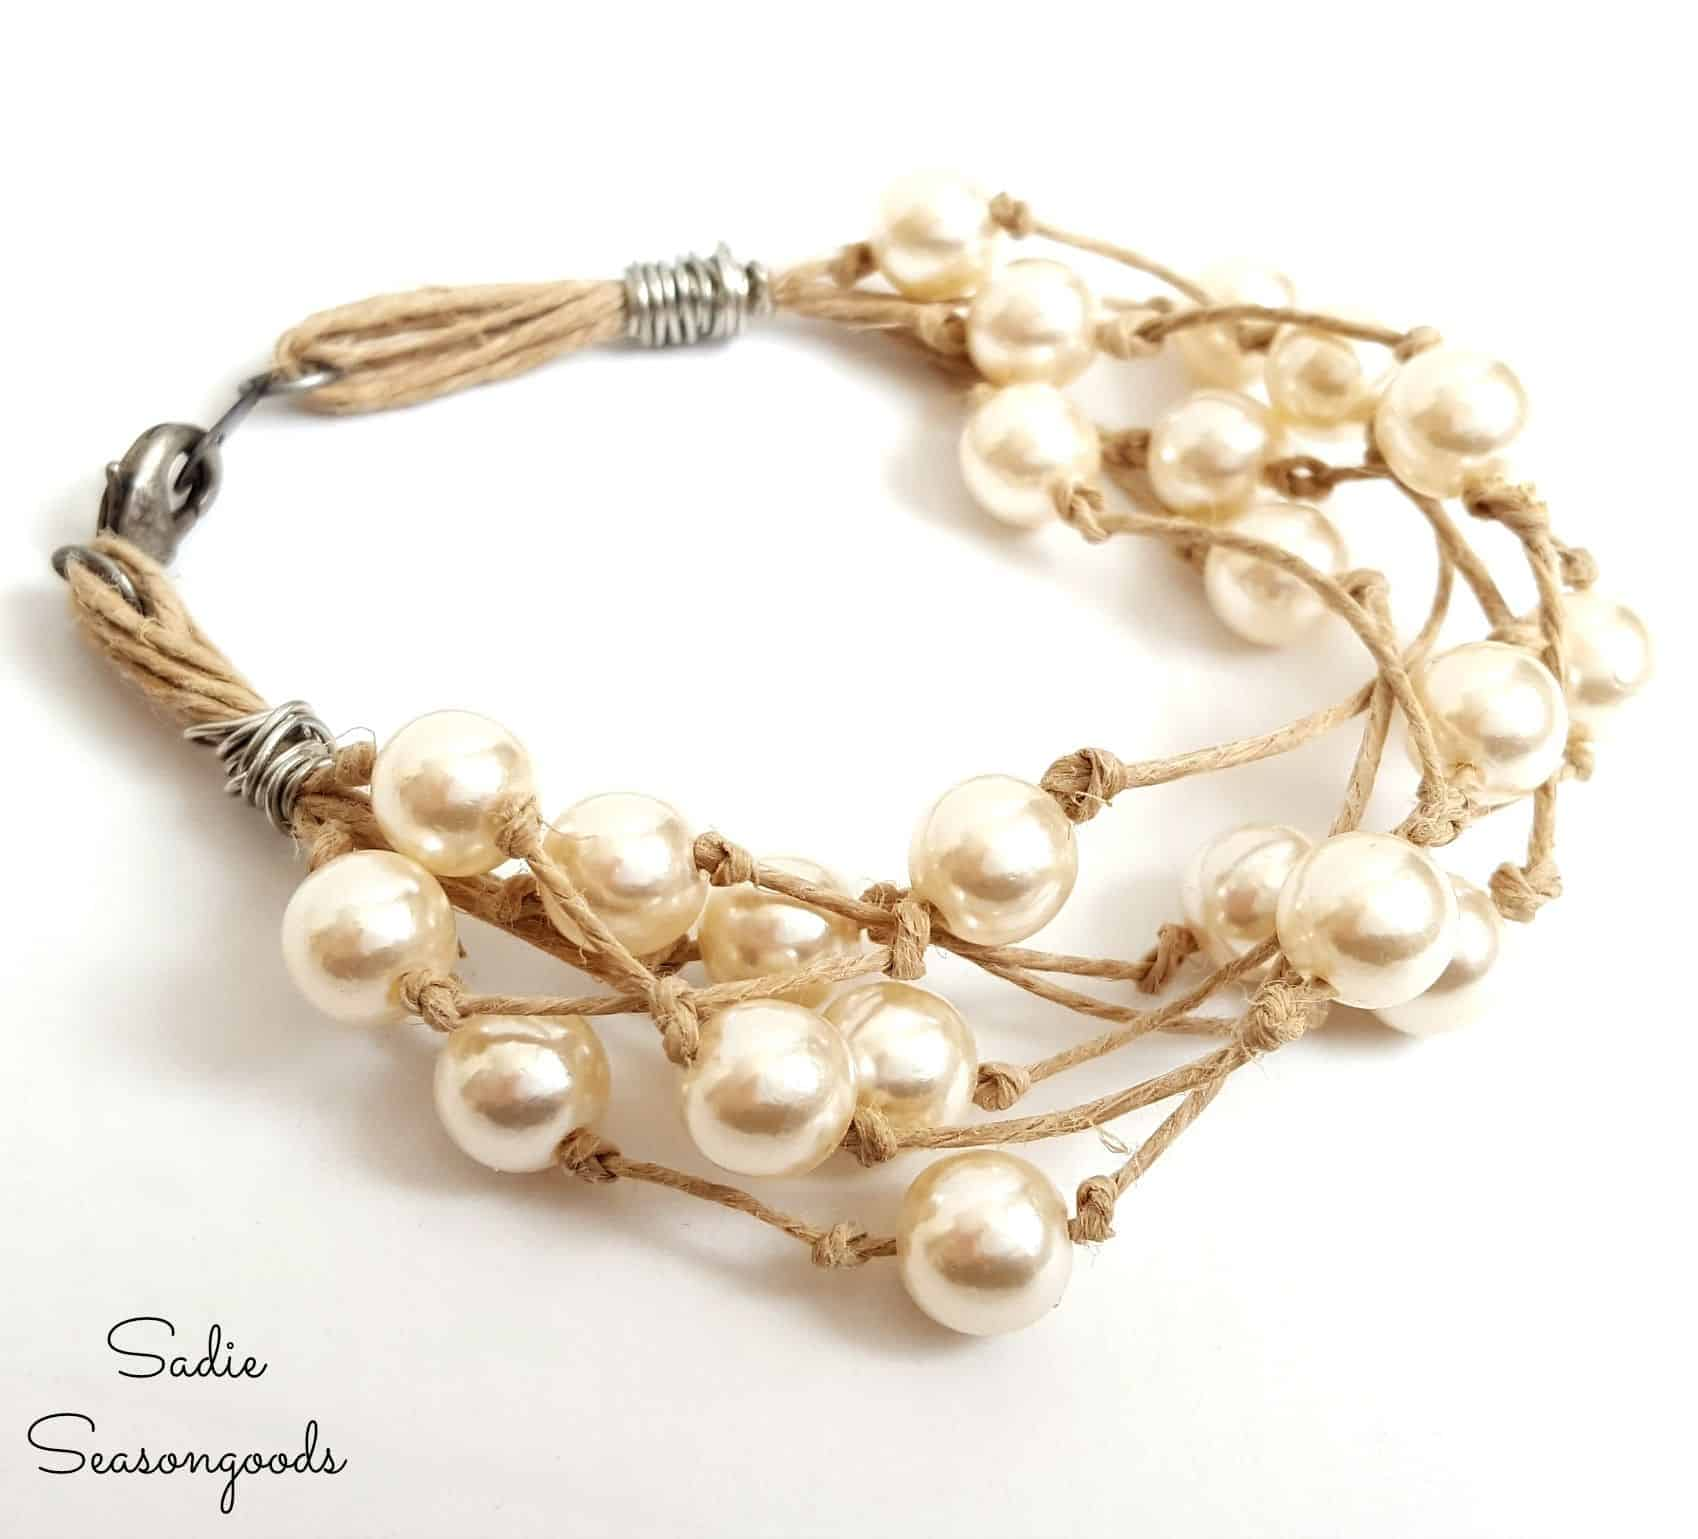 Hemp string bracelet with pearls